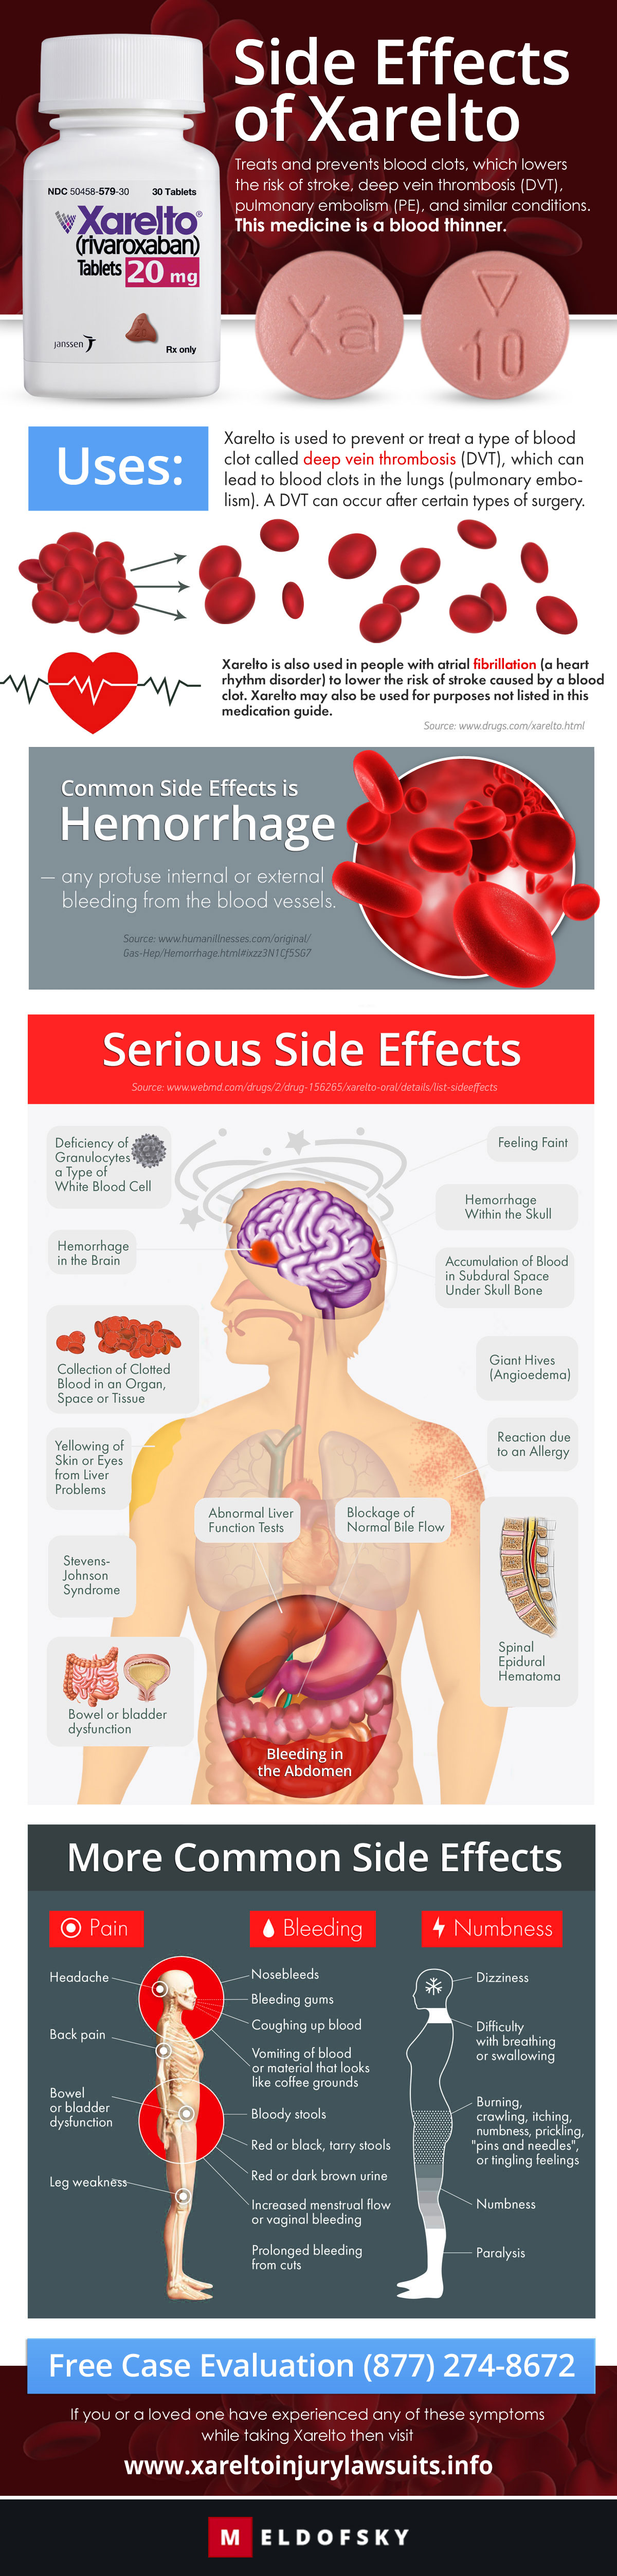 Pin On Xarelto Serious Side Effects